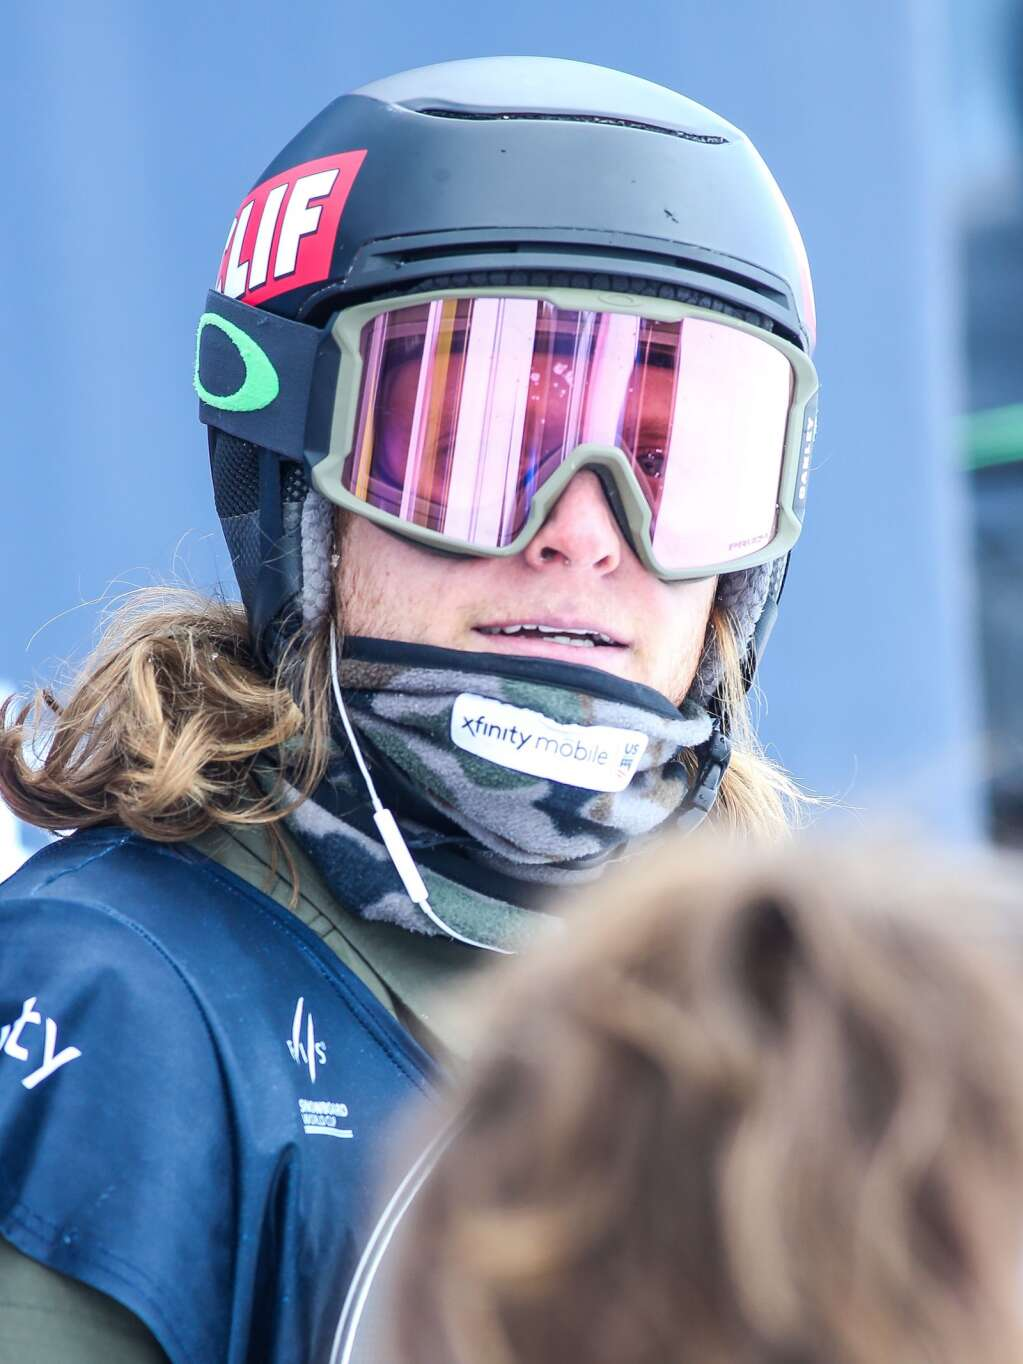 Taylor Gold awaits his score during the men's snowboard halfpipe final of the U.S. Grand Prix and World Cup on Sunday, March 21, 2021, at Buttermilk Ski Area in Aspen, Colo. Photo by Austin Colbert/The Aspen Times.